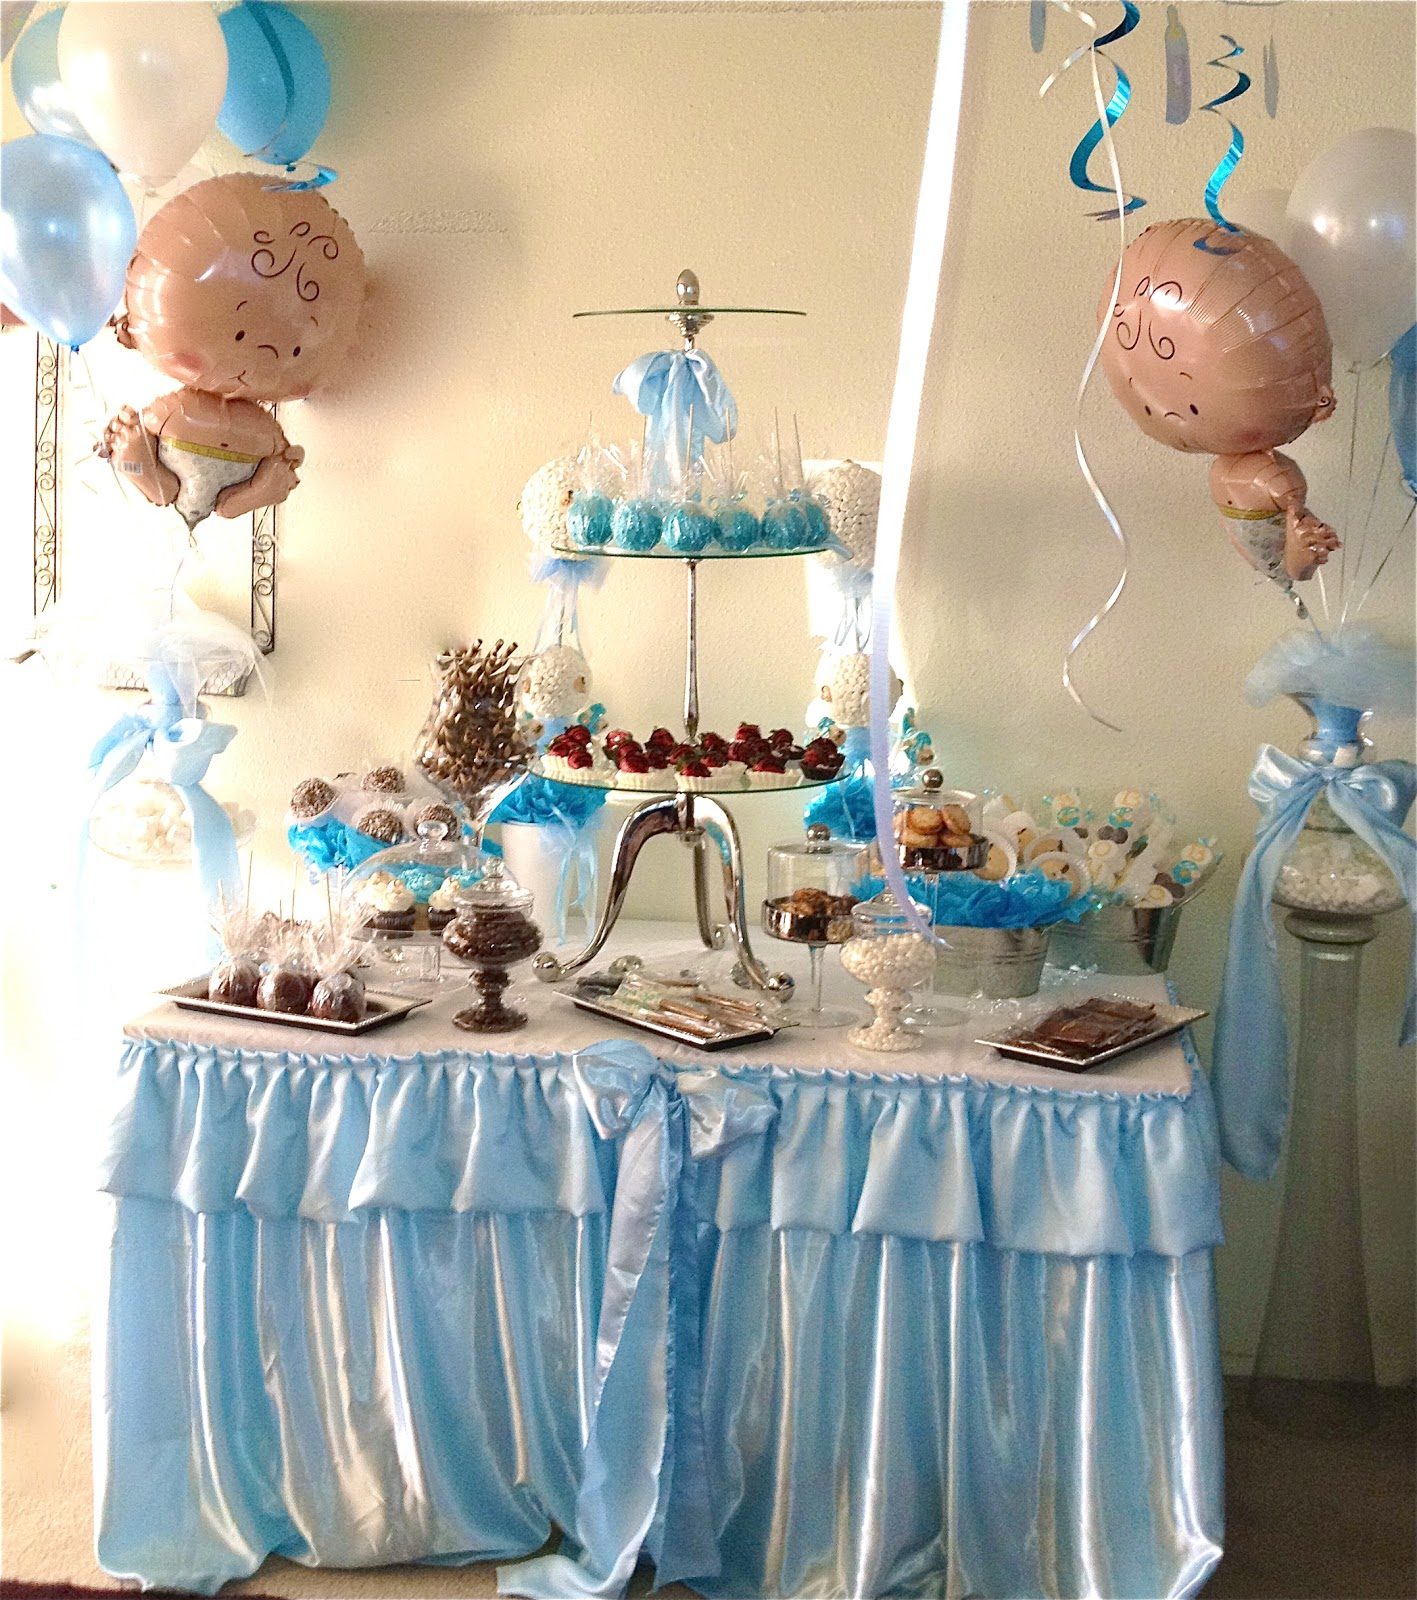 Candy For Baby Shower Ideas: Erika's Elegant Events: Candy Bar Tables